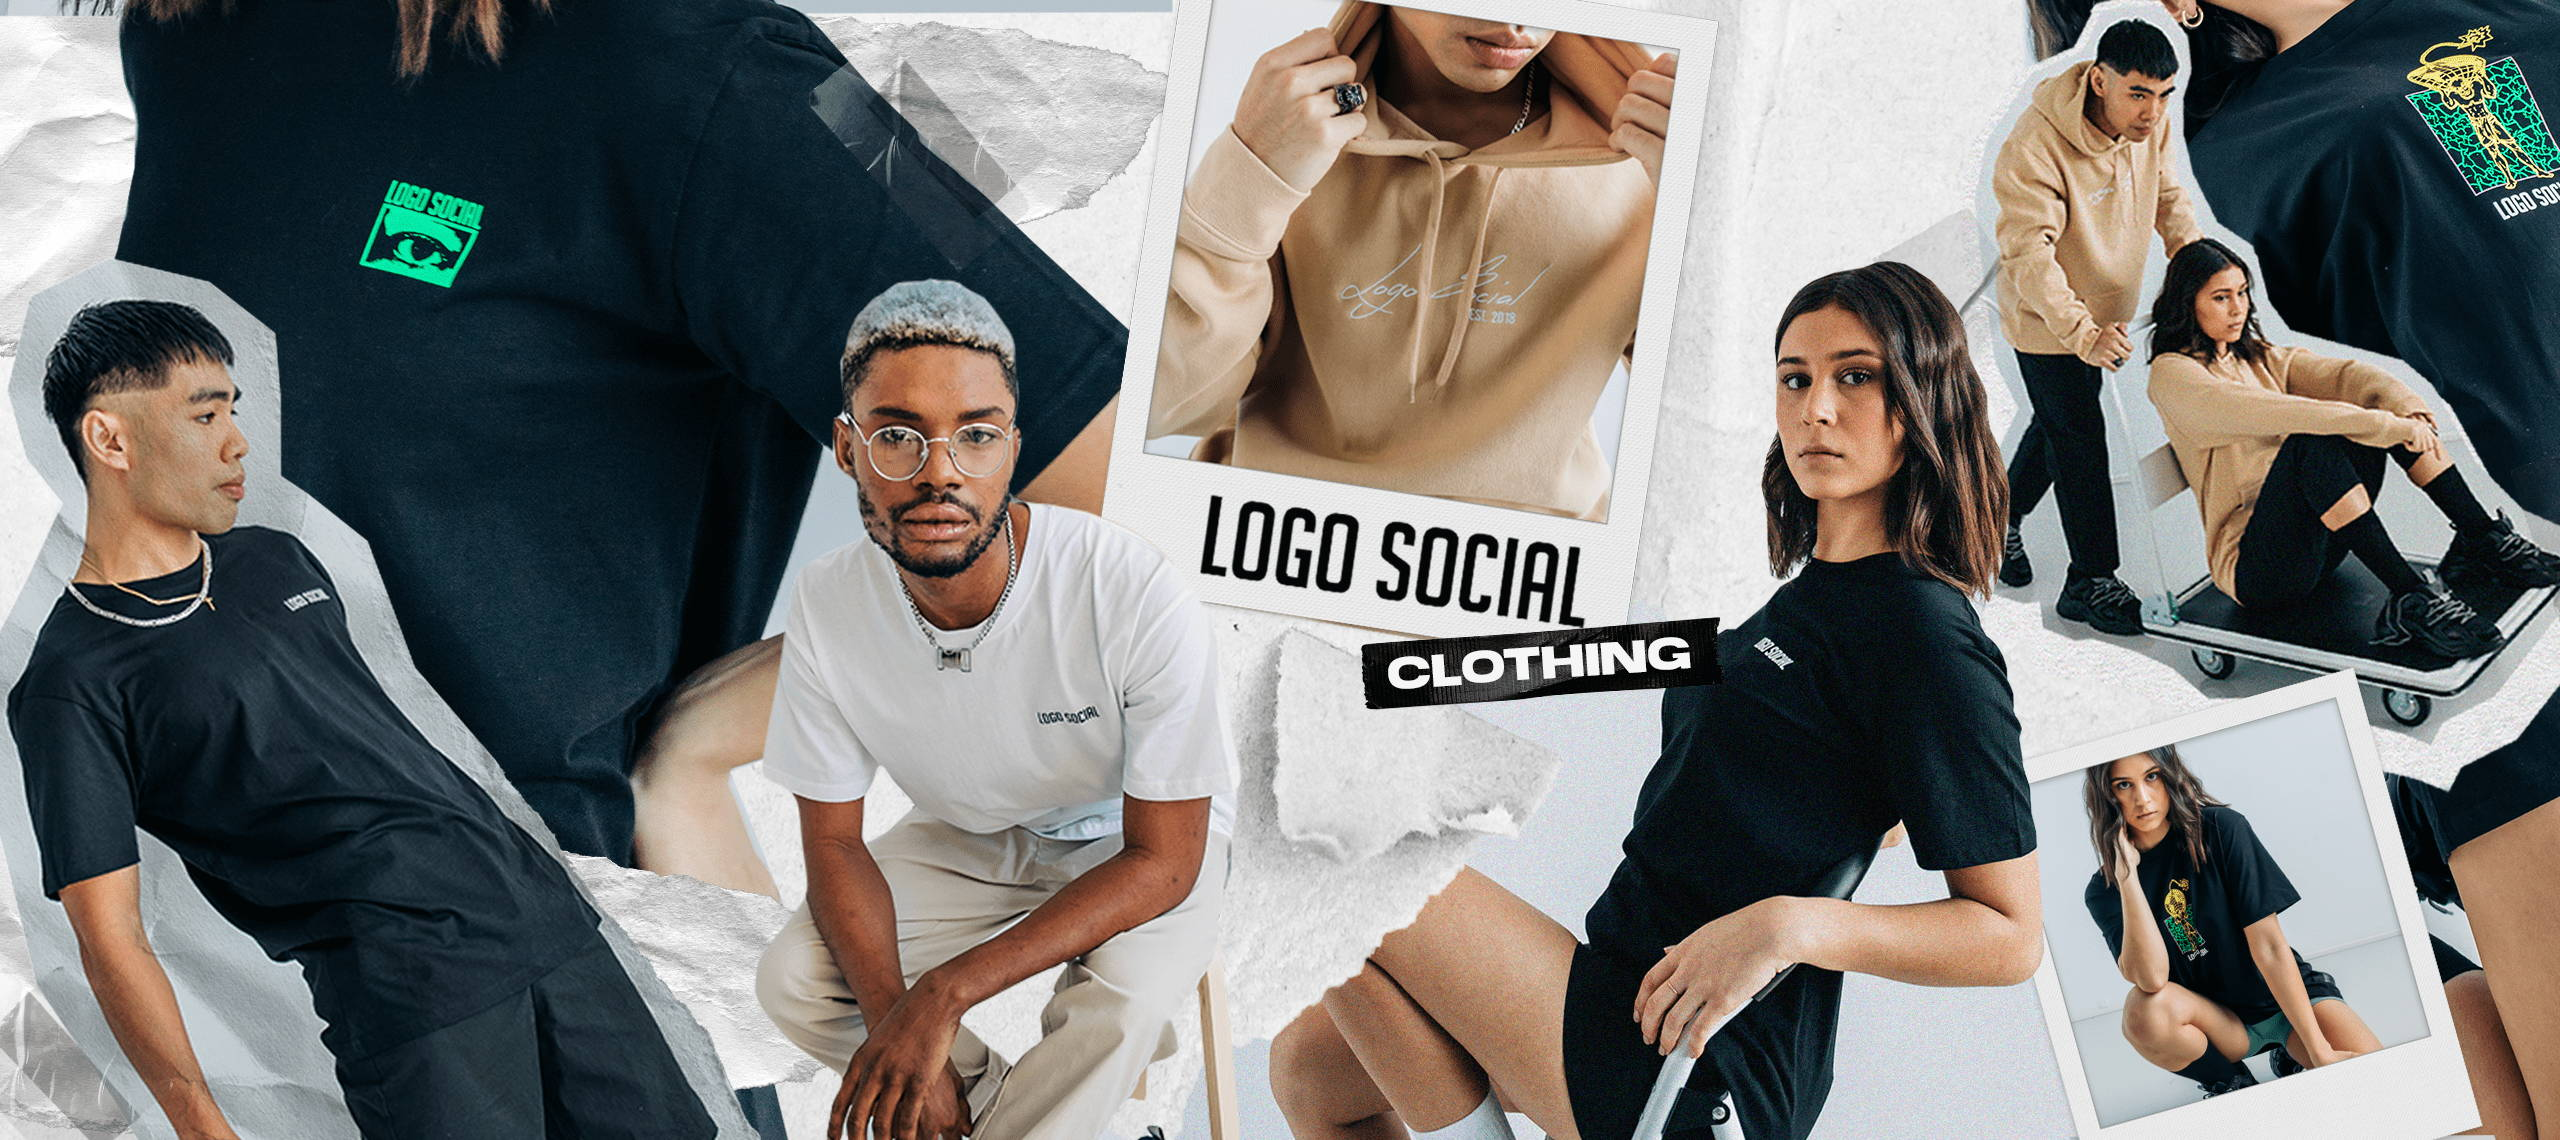 Group of models posing in different logo social clothing wear